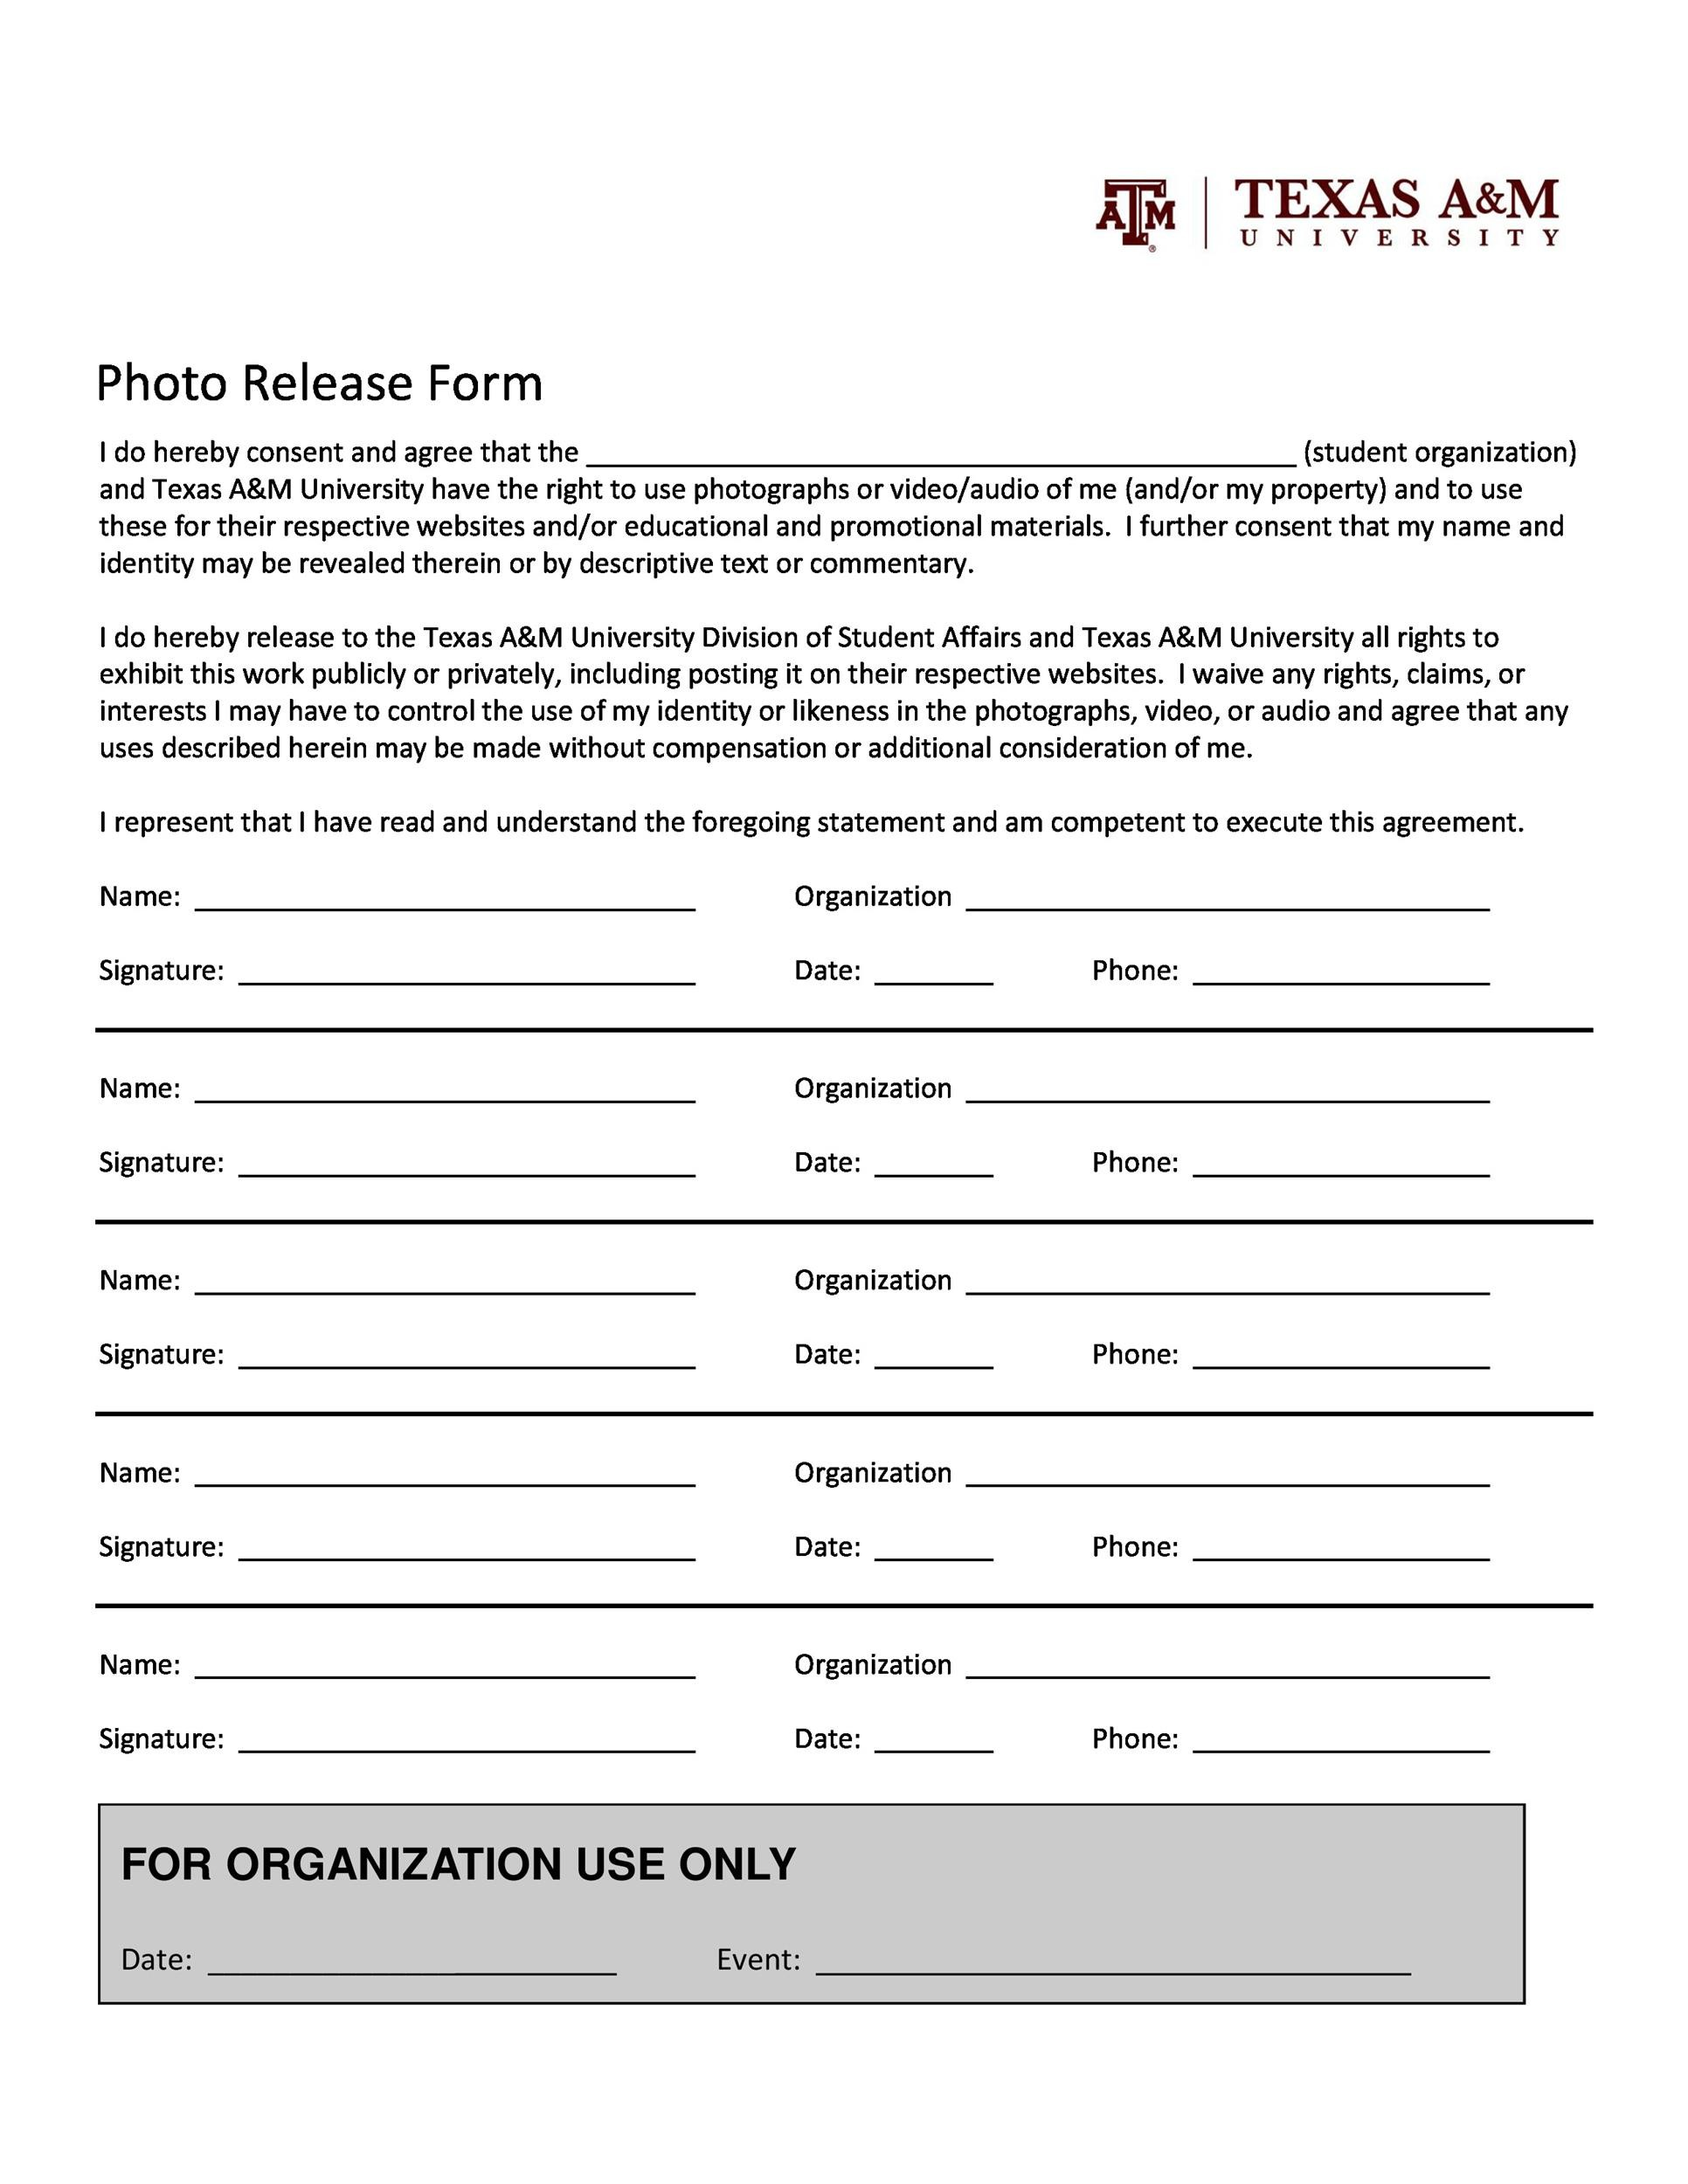 Free Photo Release Form Templates Word Pdf  Template Lab